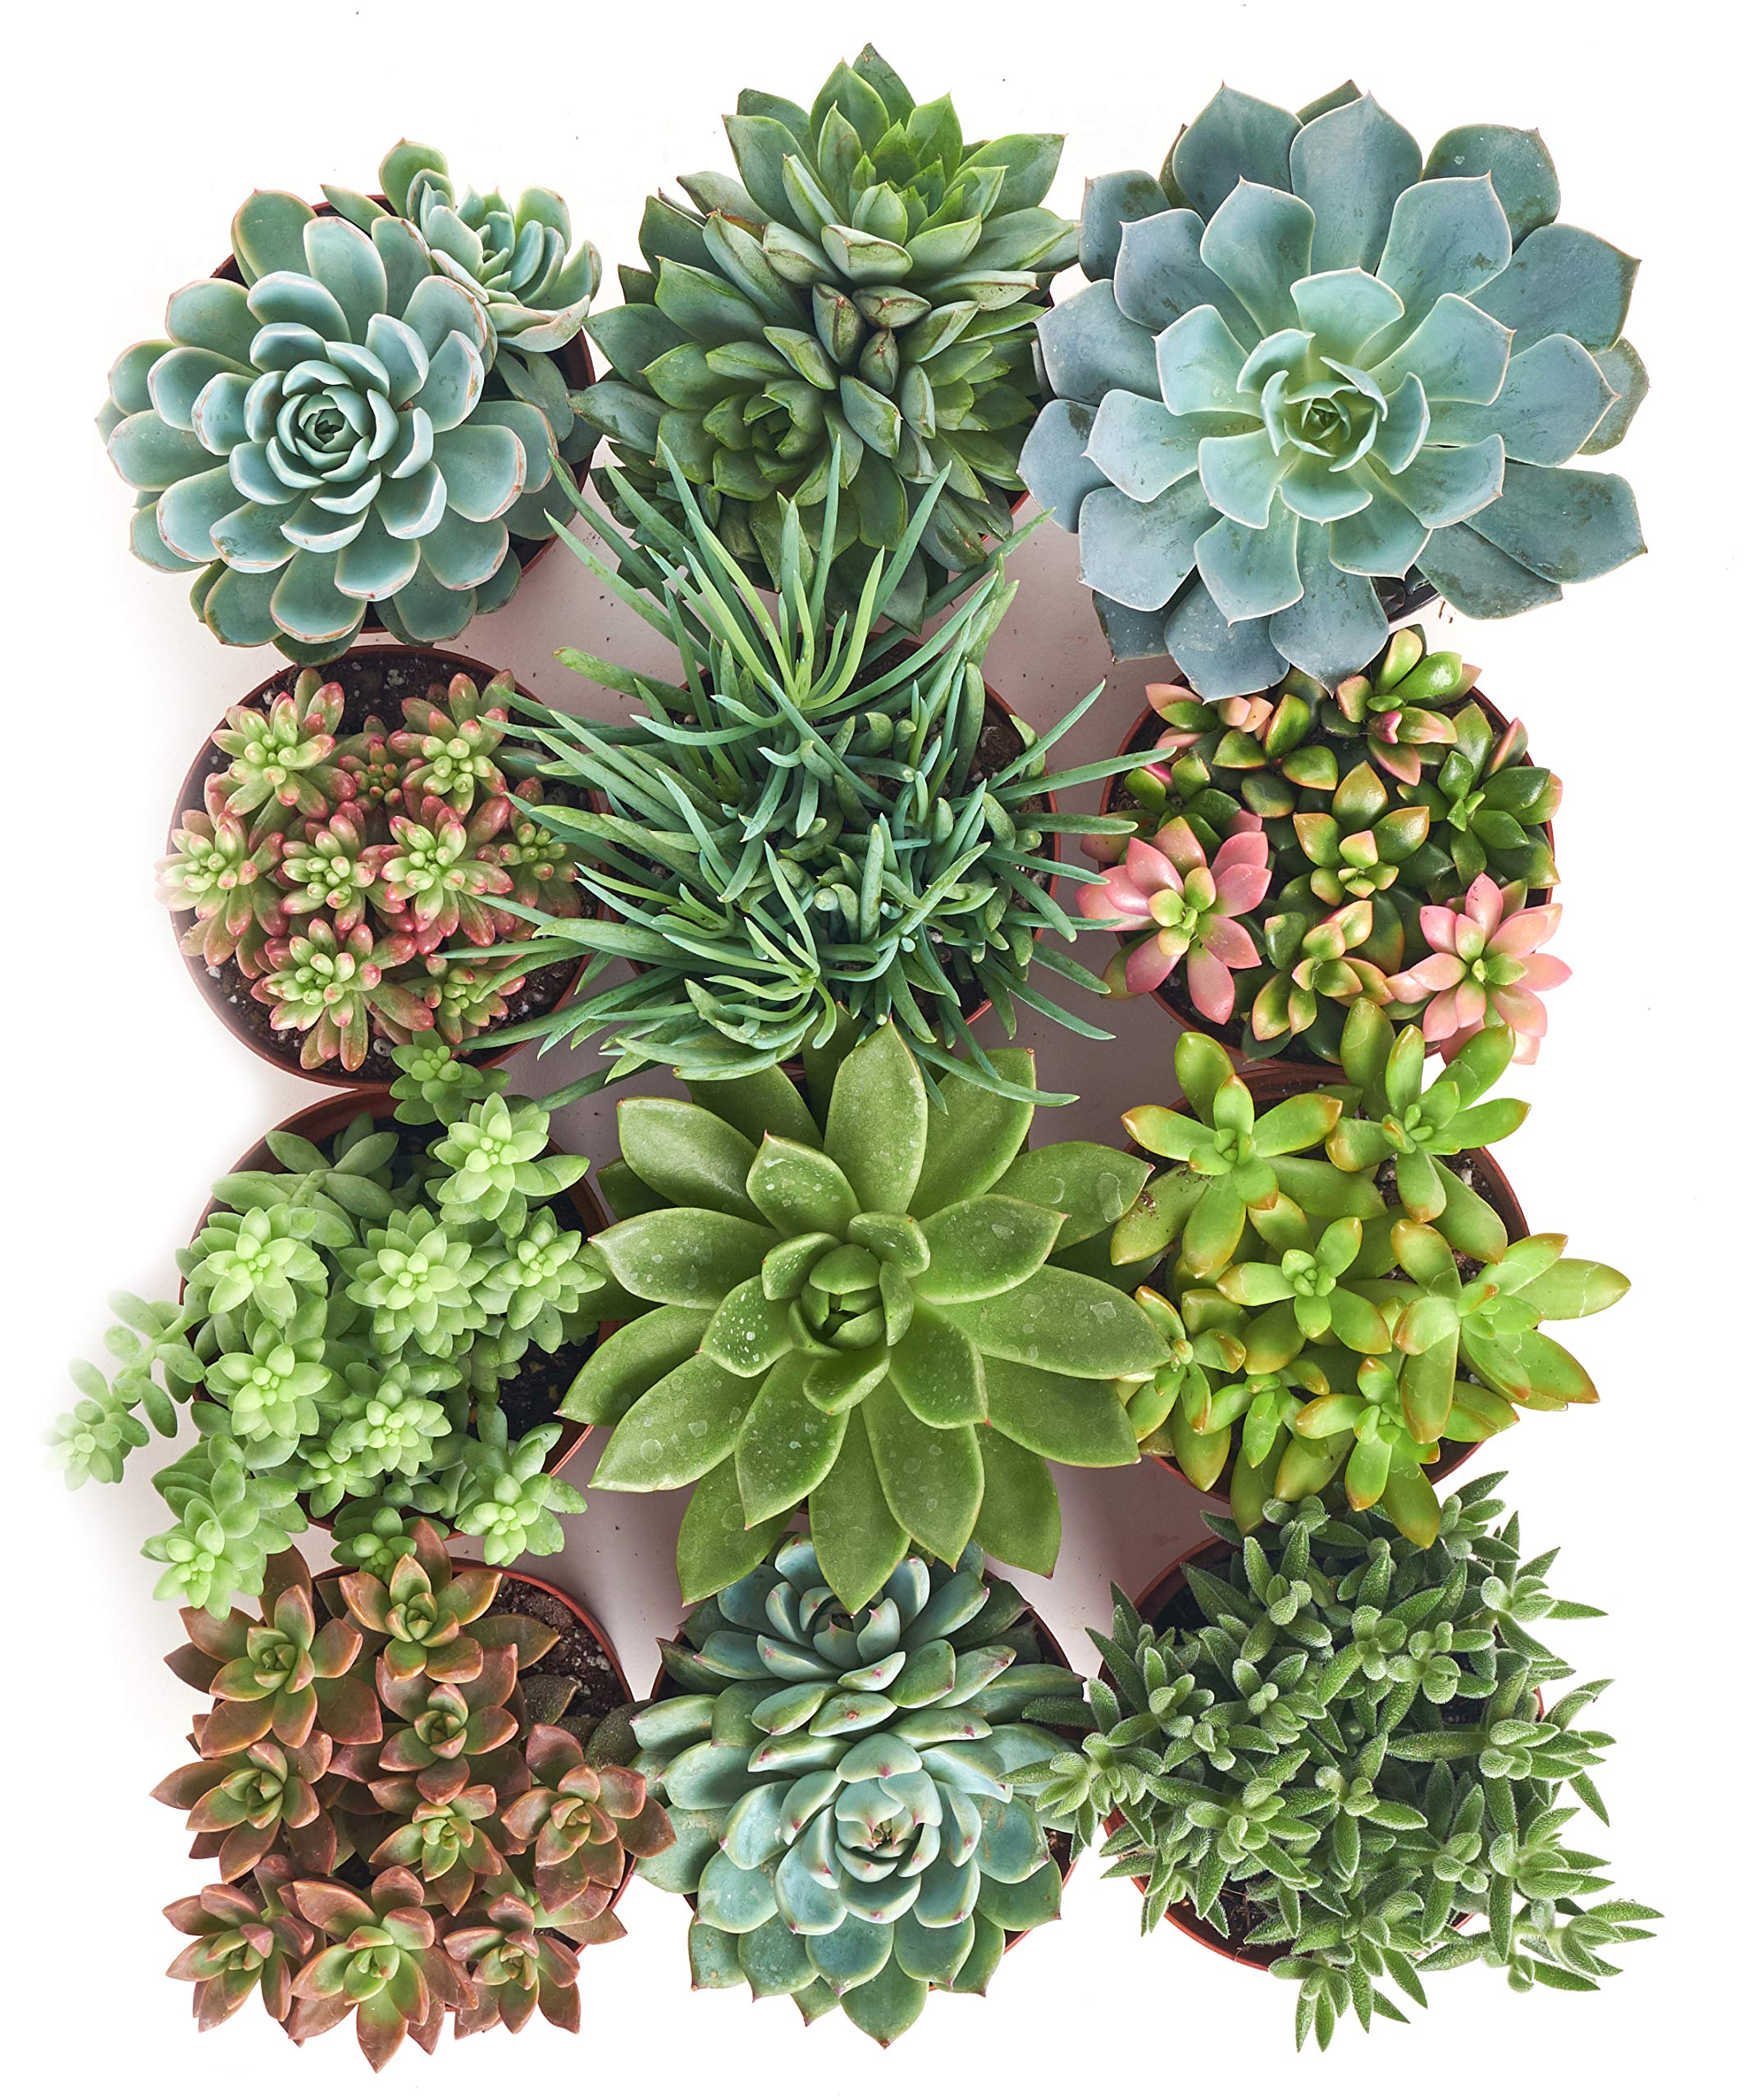 Shop Succulents | Assorted Collection of Live Succulent Plants, Hand Selected Variety Pack of Succulents | Collection of 12 by Shop Succulents